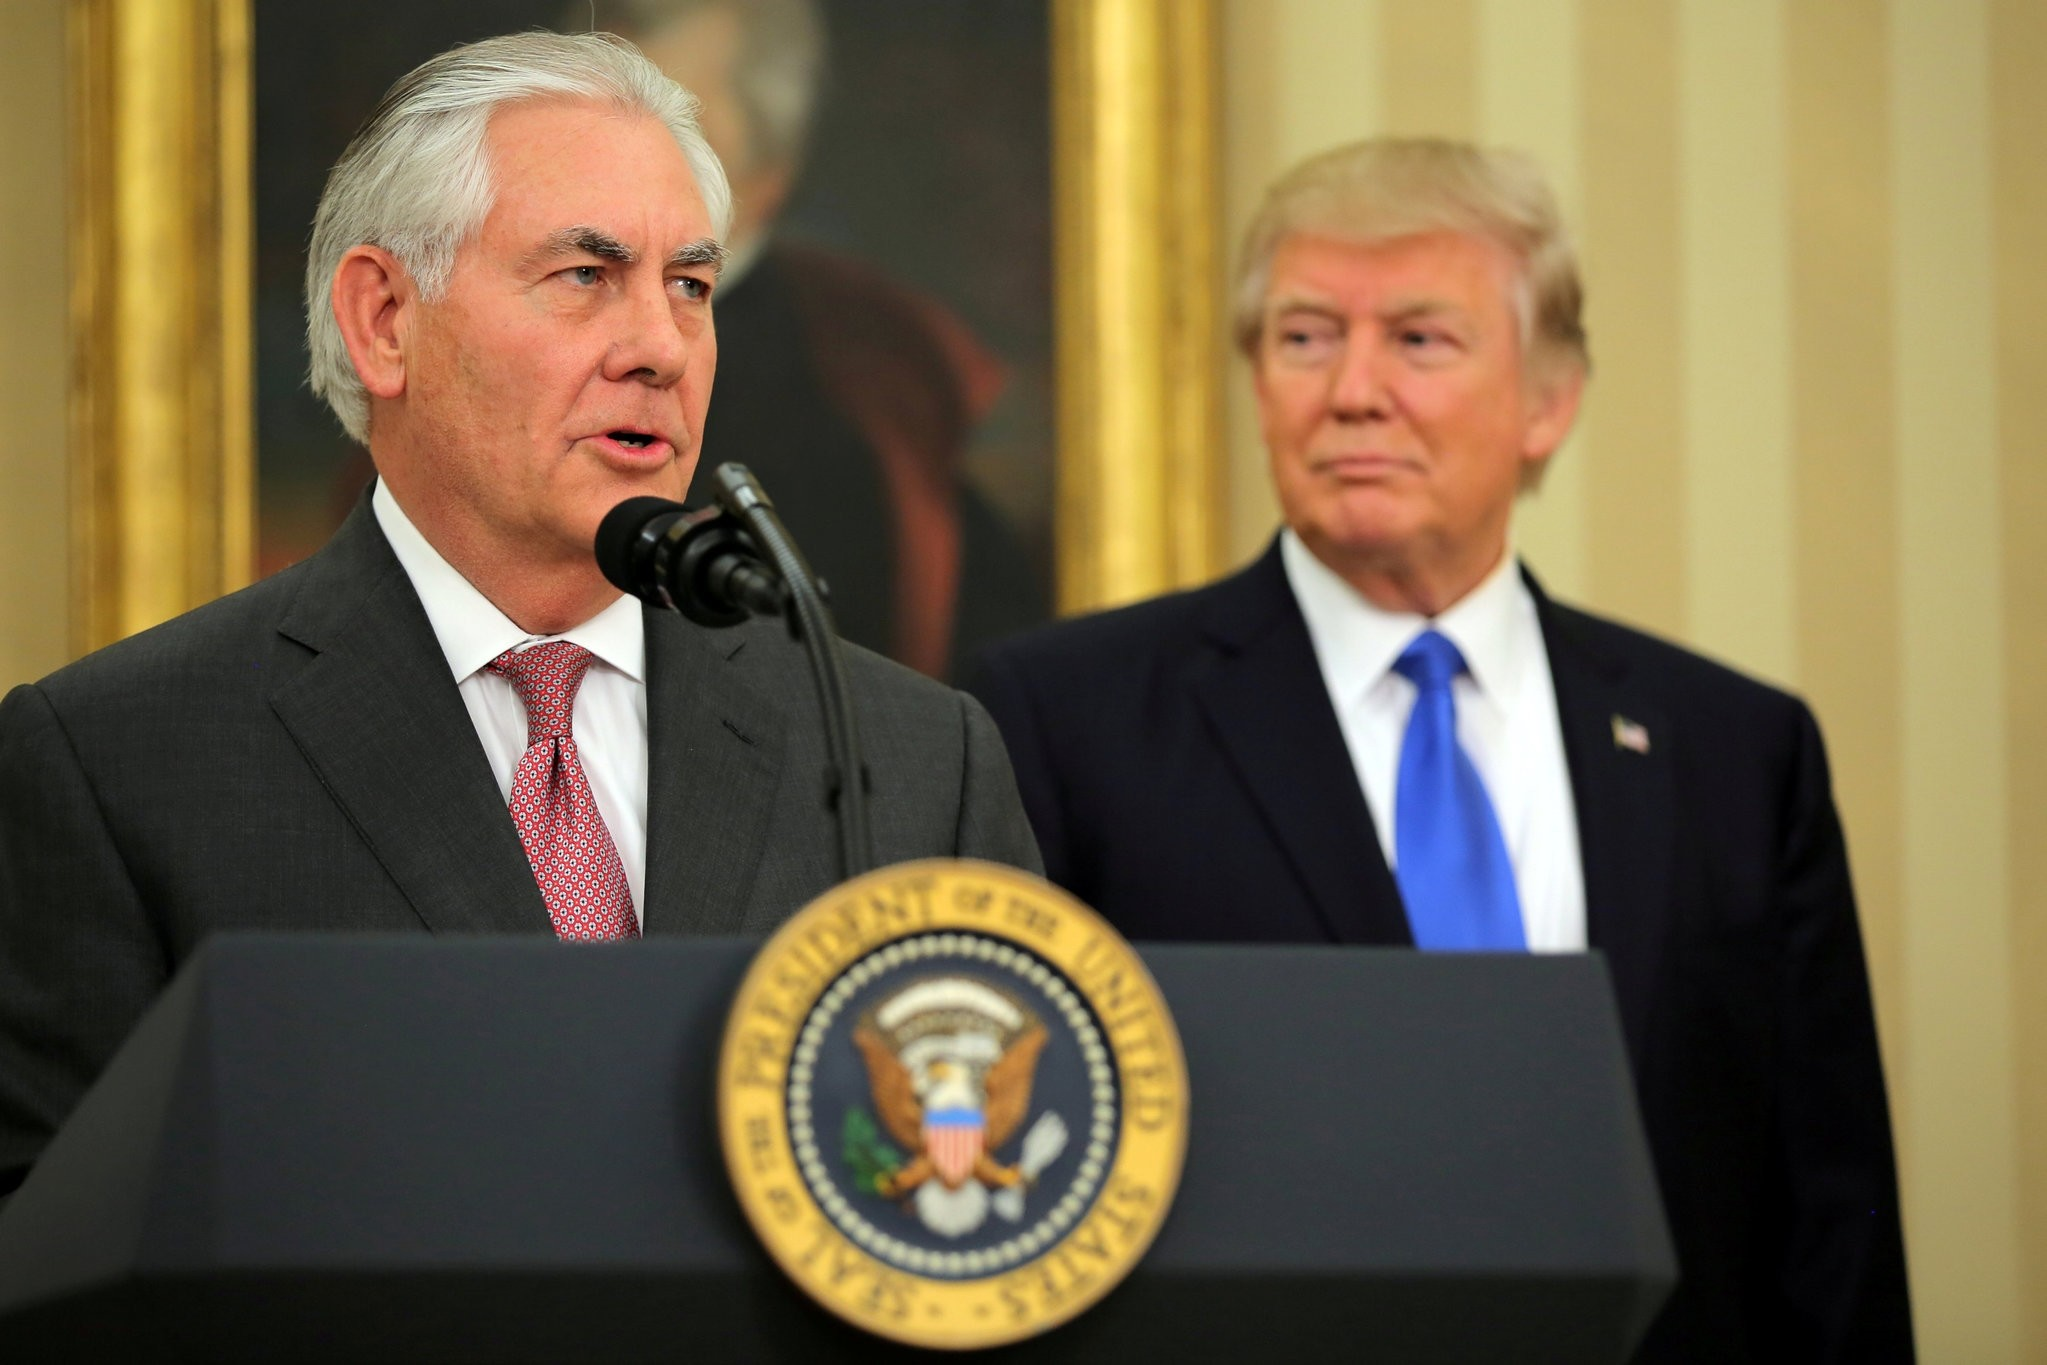 Rex Tillerson speaks after his swearing-in ceremony, accompanied by U.S. President Donald Trump. (Reuters Photo)